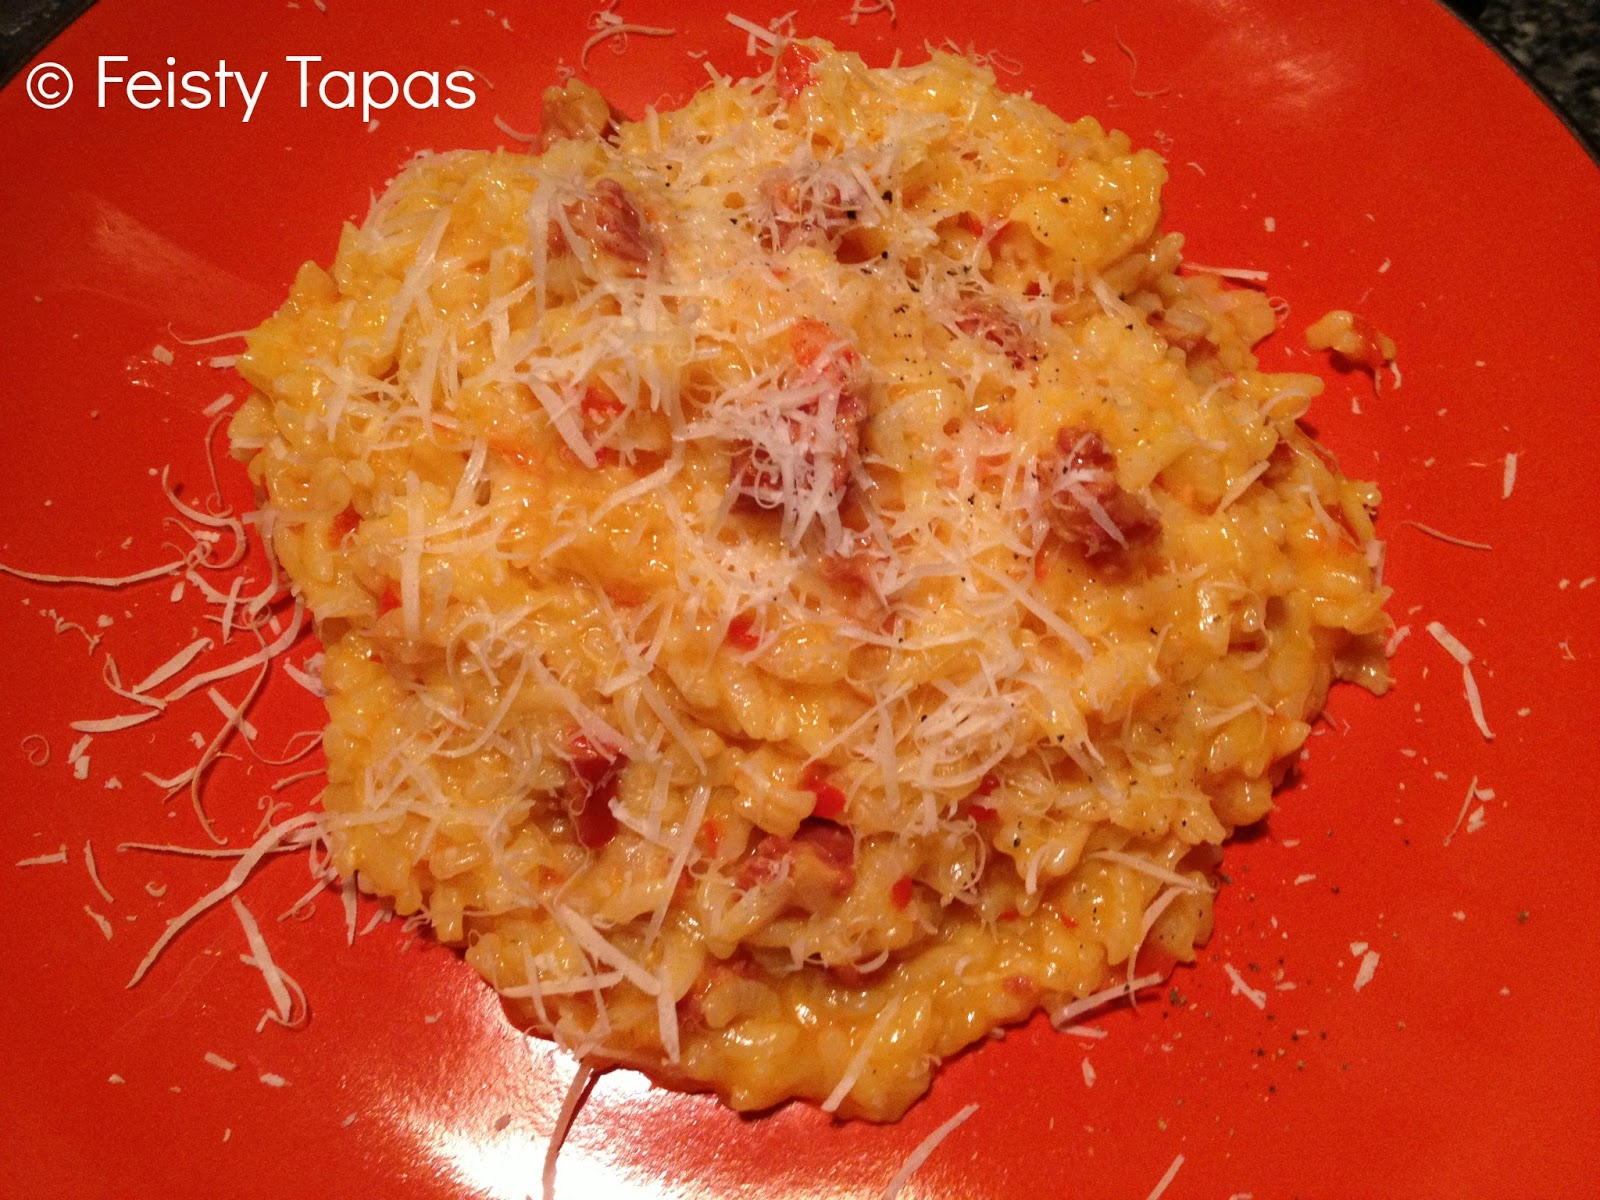 Feisty tapas thermomix chorizo and red pepper risotto recipe - Risotto chorizo thermomix ...